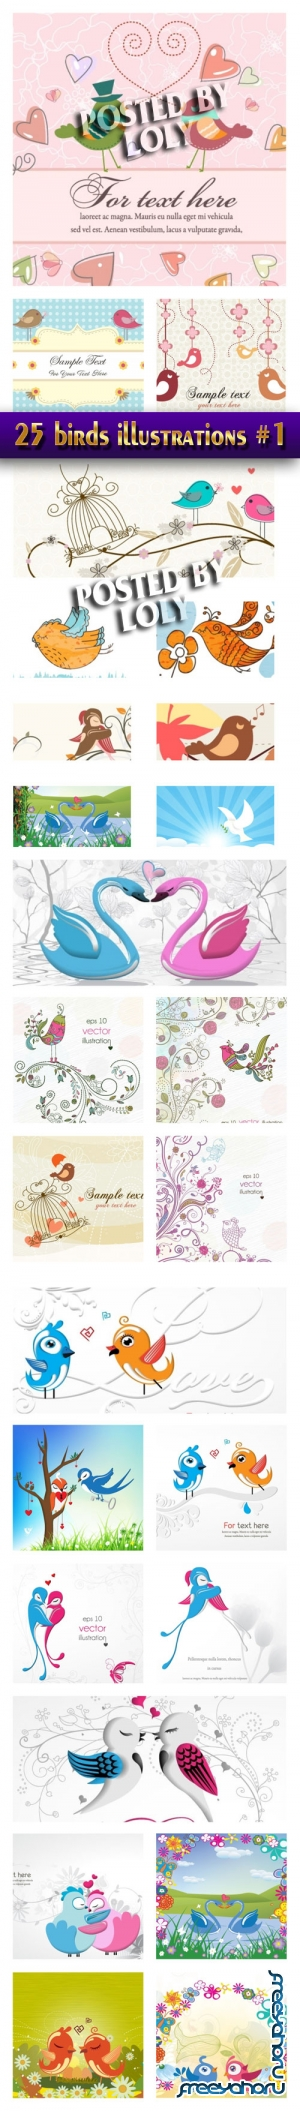 25 birds illustrations V1 - Stock Vector